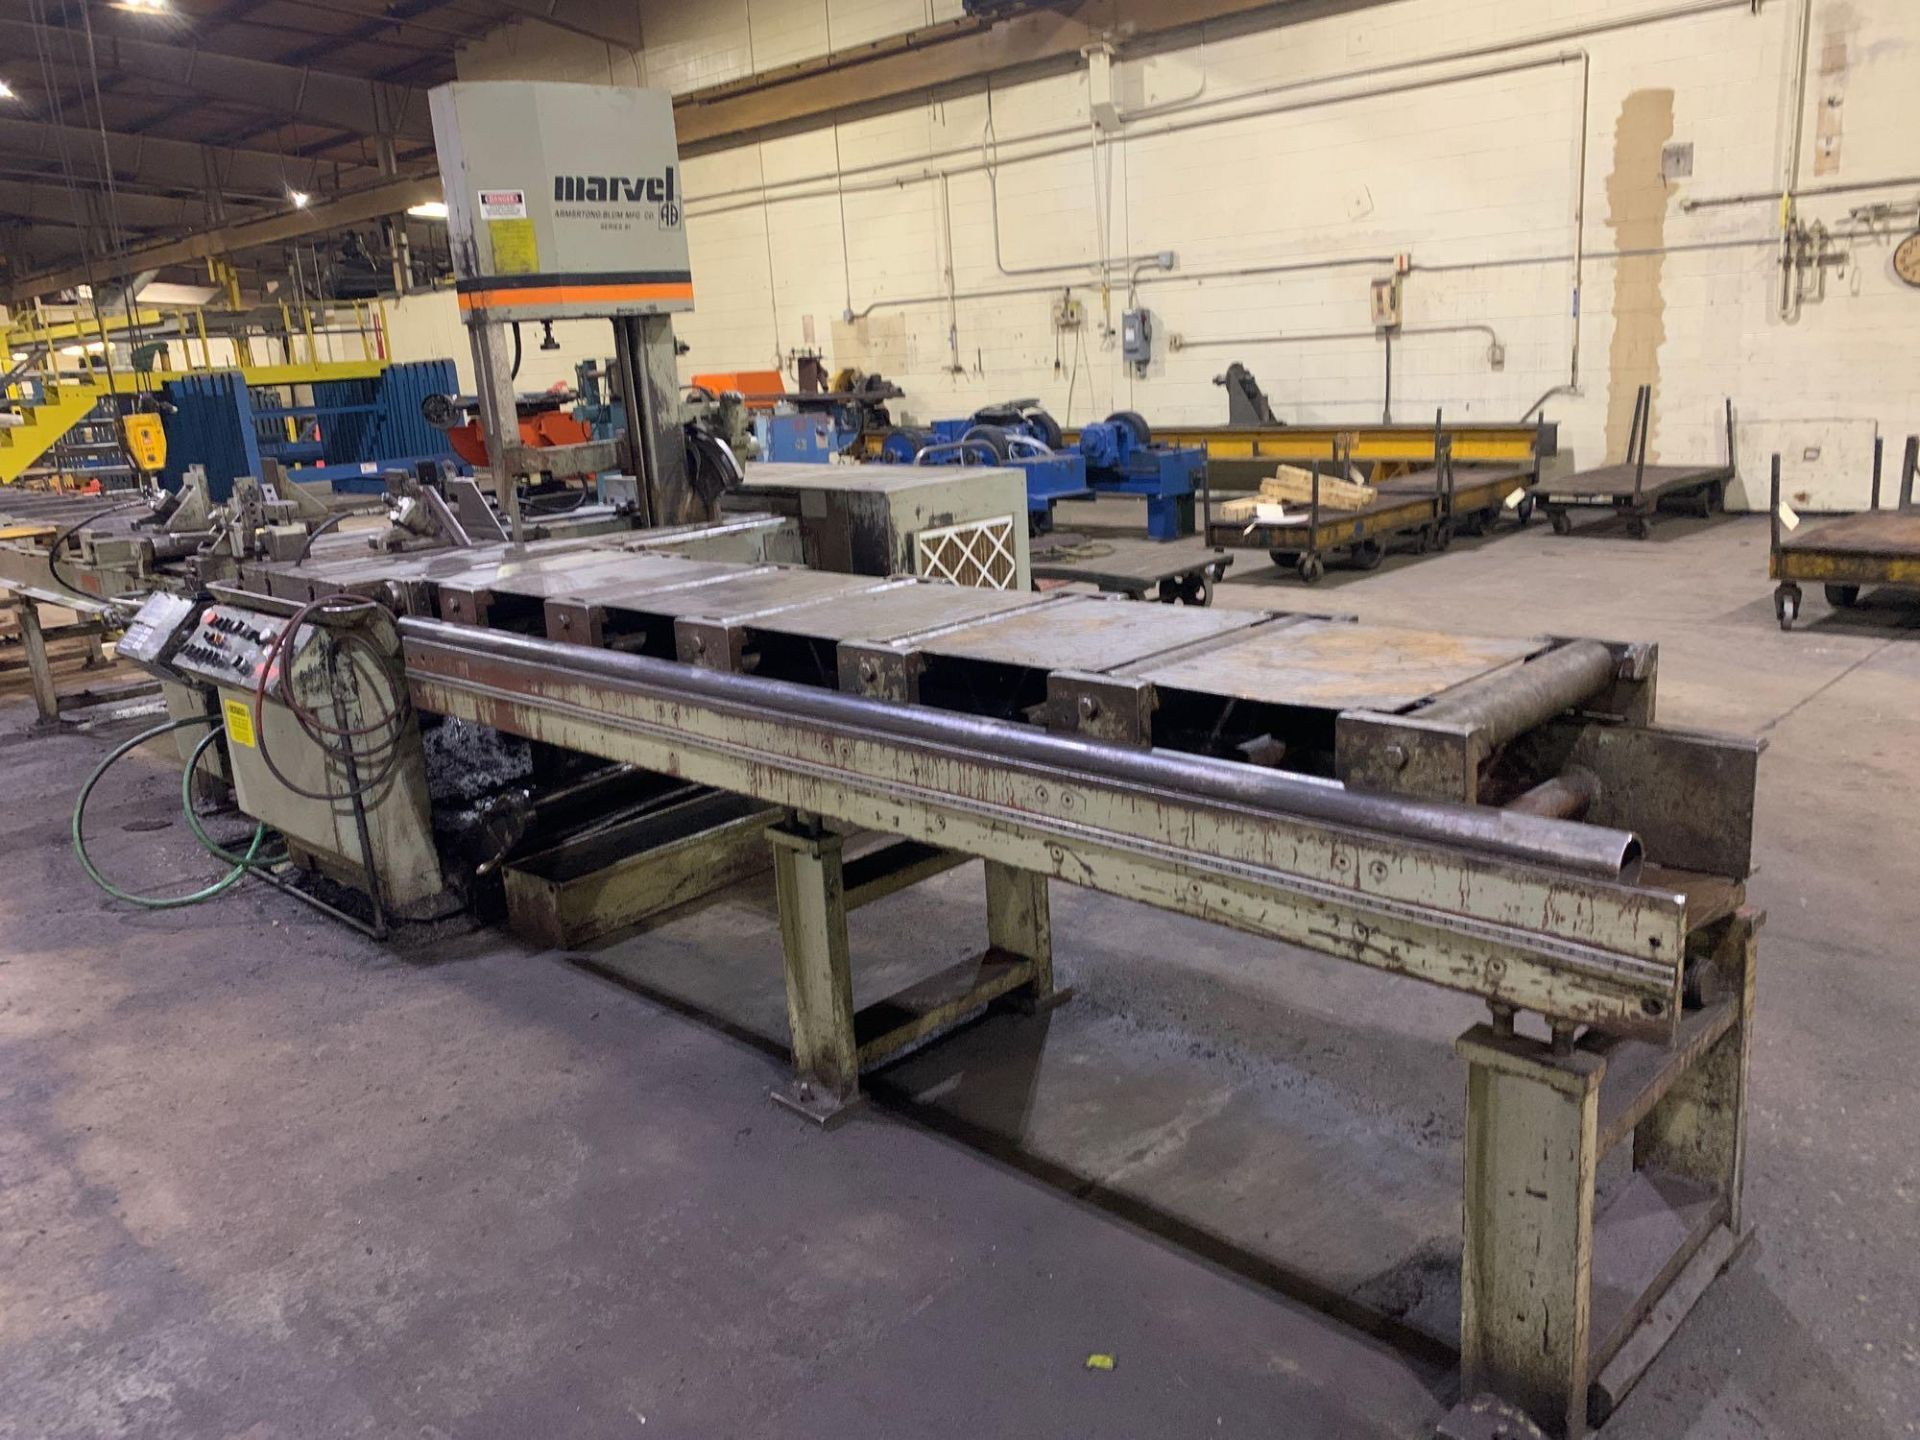 """Marvel Armstrong Blum Automatic Universal Band Saw Model 81A11PC Rated Capacity 18"""" x 20"""" Serial No. - Image 17 of 30"""